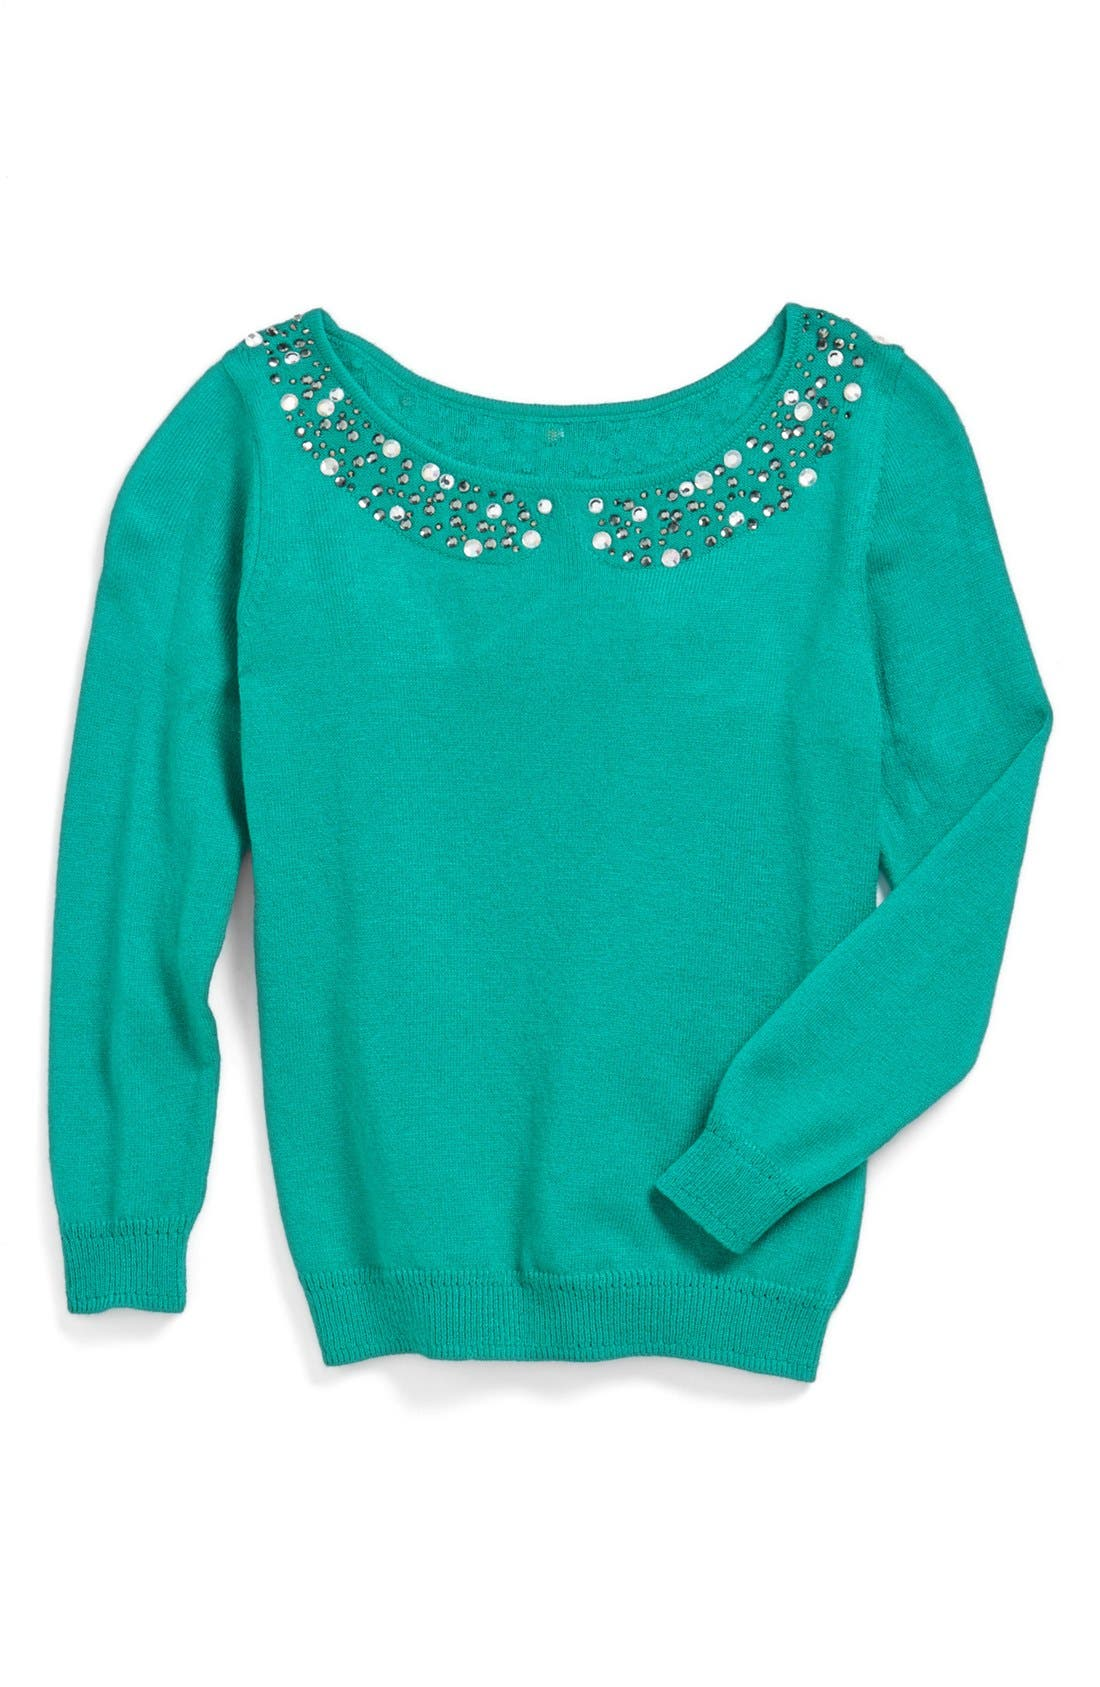 Main Image - Milly Minis Rhinestone Collar Sweater (Toddler Girls, Little Girls & Big Girls)